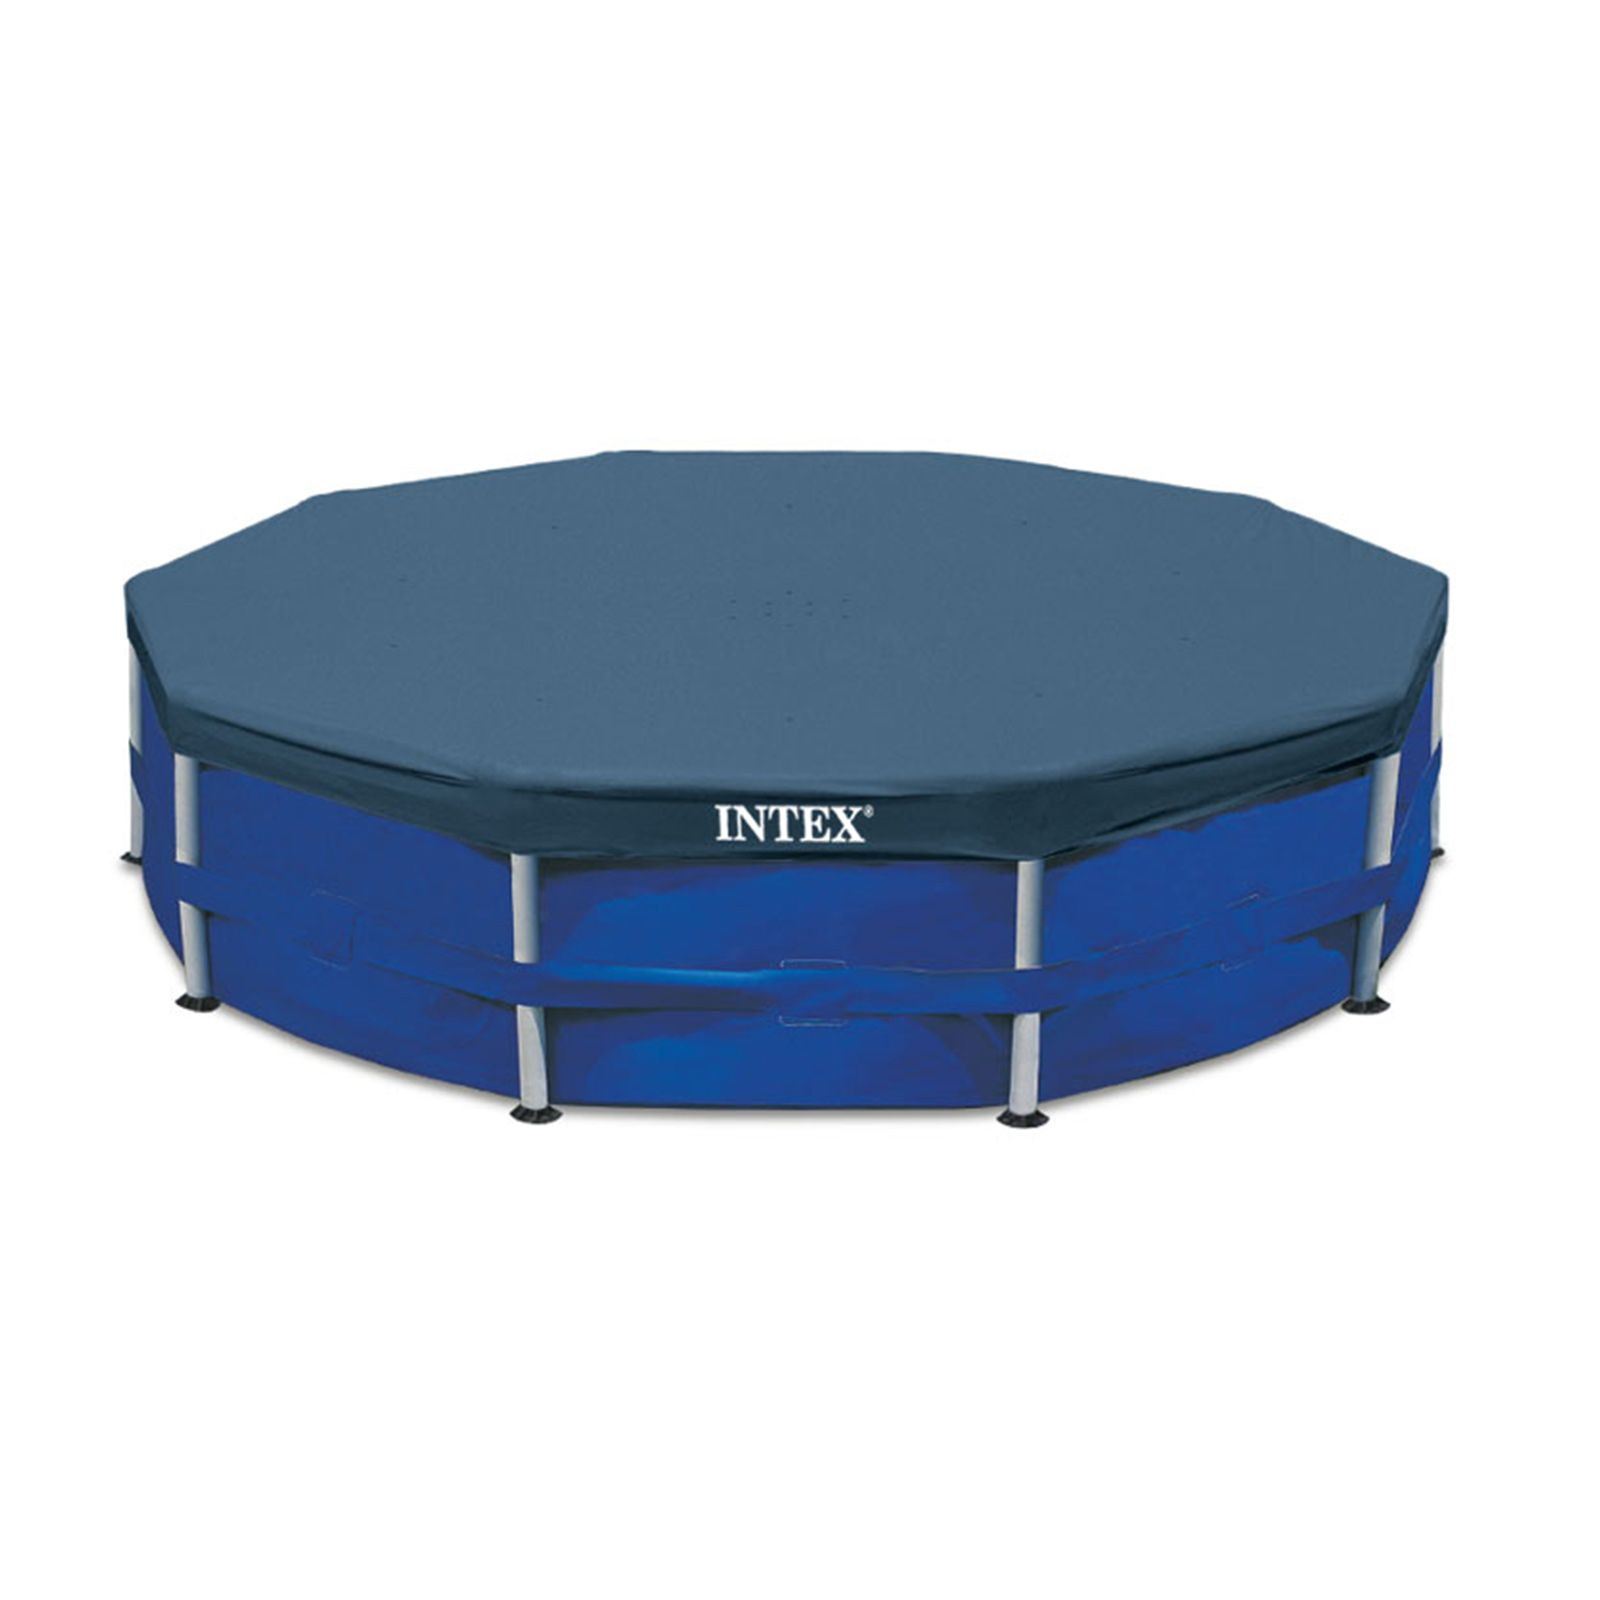 B che pour piscine tubulaire m intex piscine for Bache piscine intex 3 66